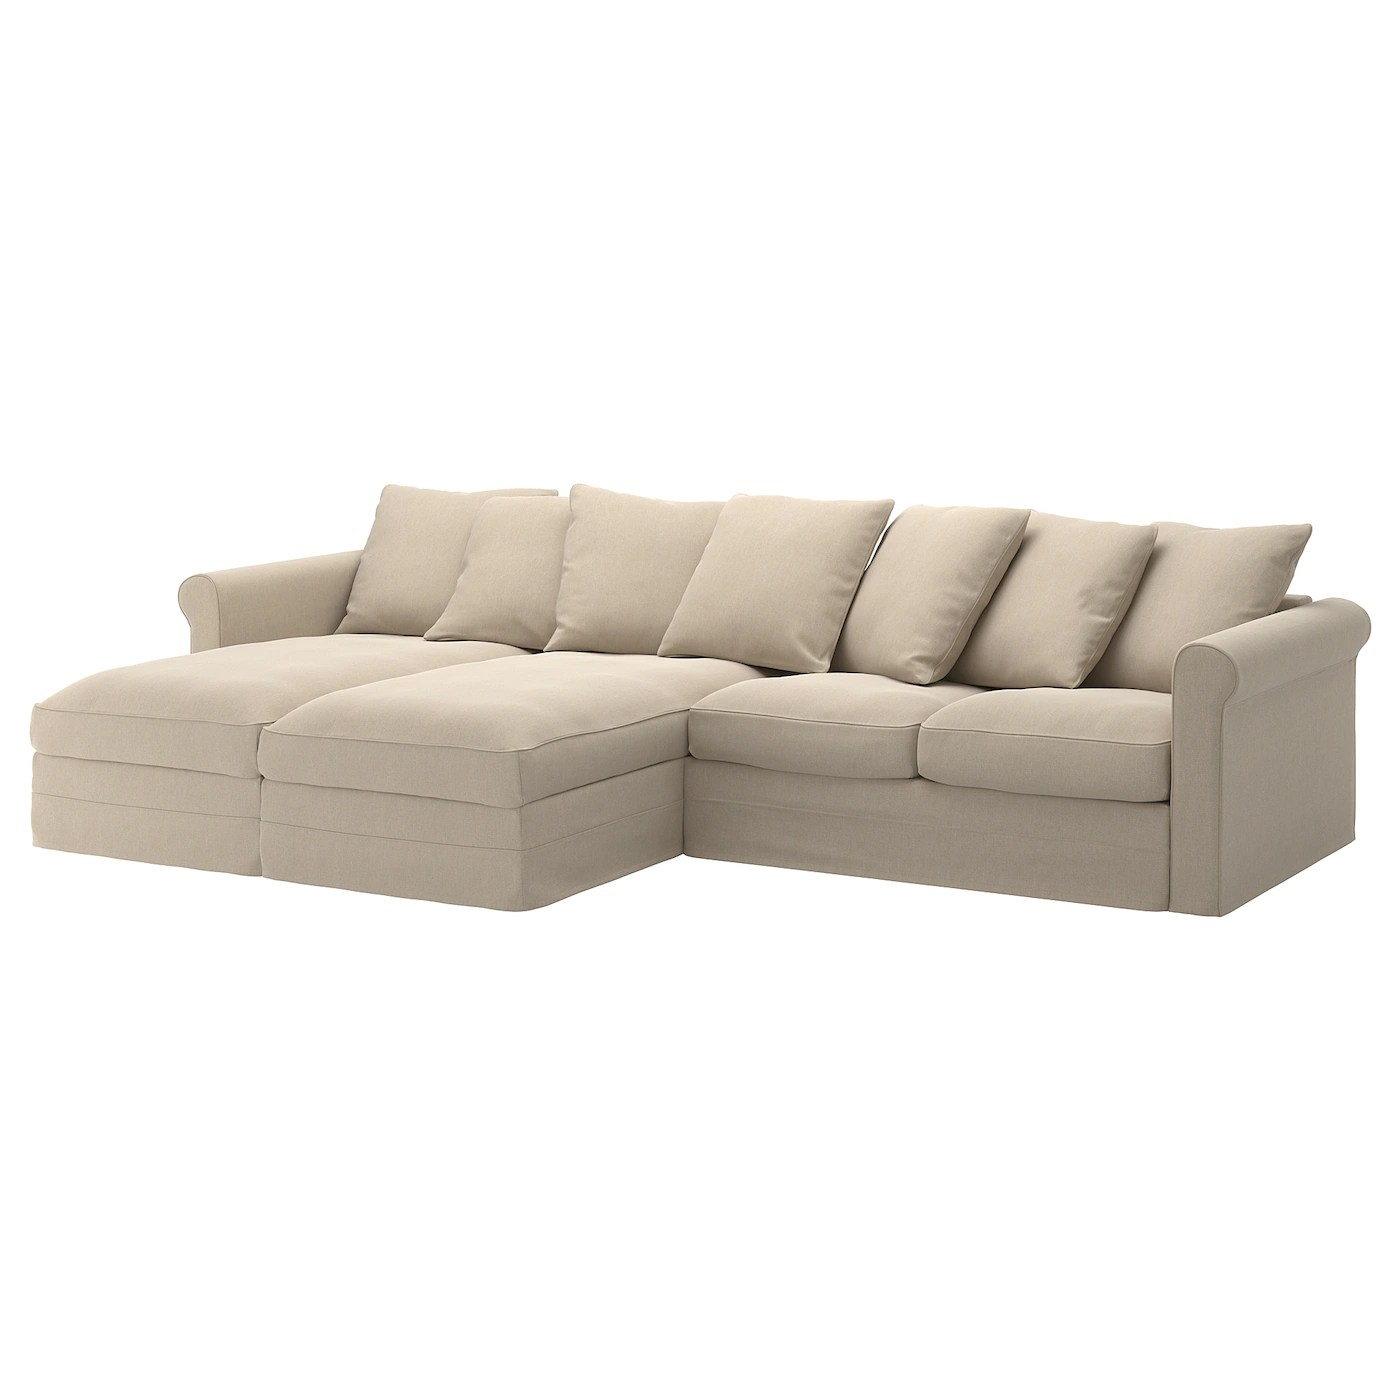 Sectional 4 Seat Gronlid With Chaise Sporda Natural